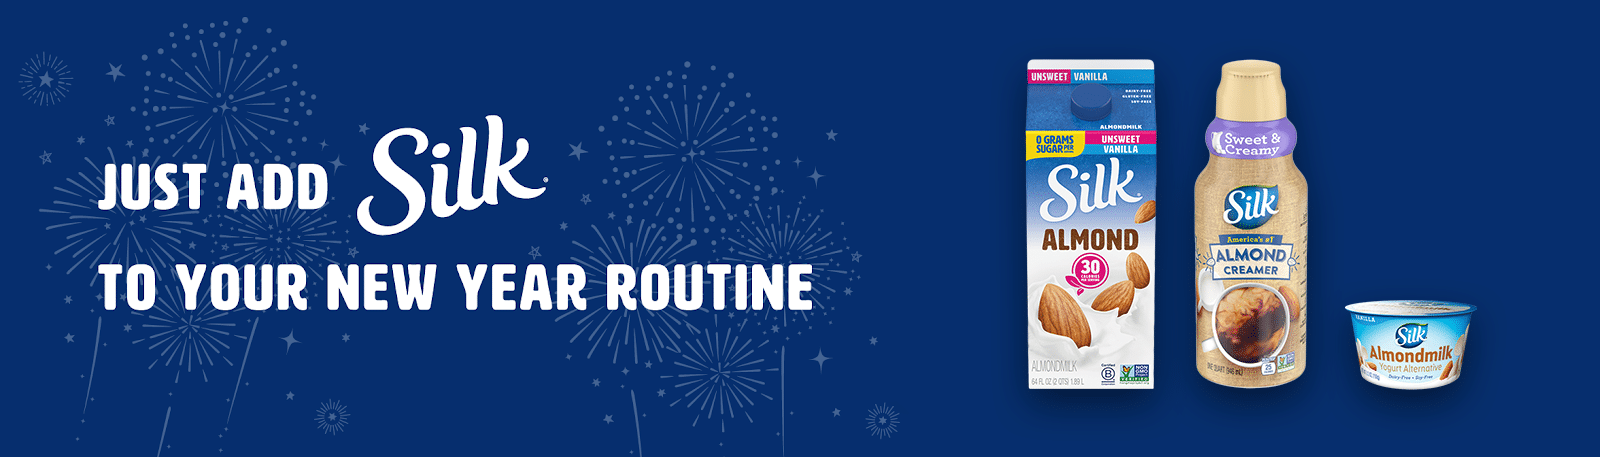 Silk New Year Routine. The New Year season is upon us, which means we are all striving to live better, healthier, more fulfilled lives. Silk® is here to help! We know big change comes with small steps, so tackle your New Year Goals with Silk® plant-based products and regular exercise.